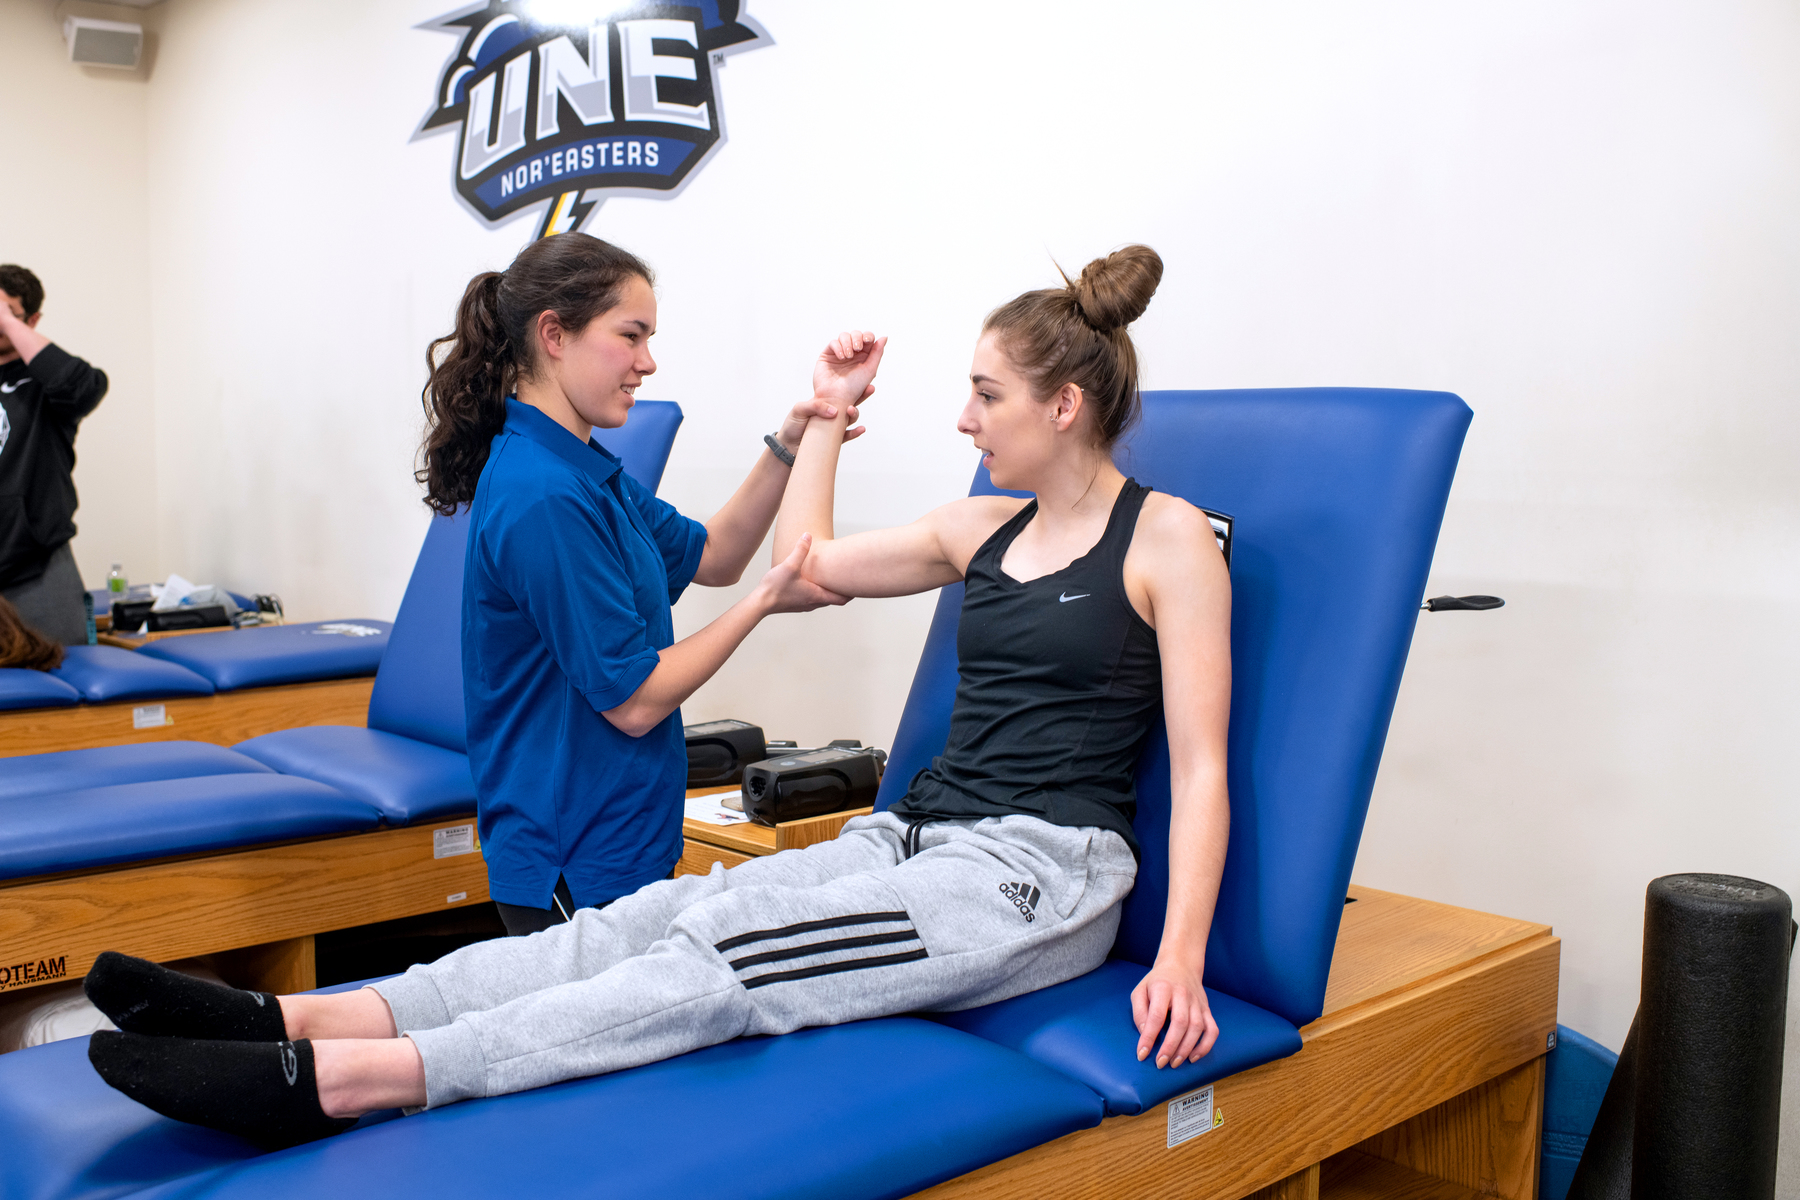 A female student performs a physical evaluation on a fellow student